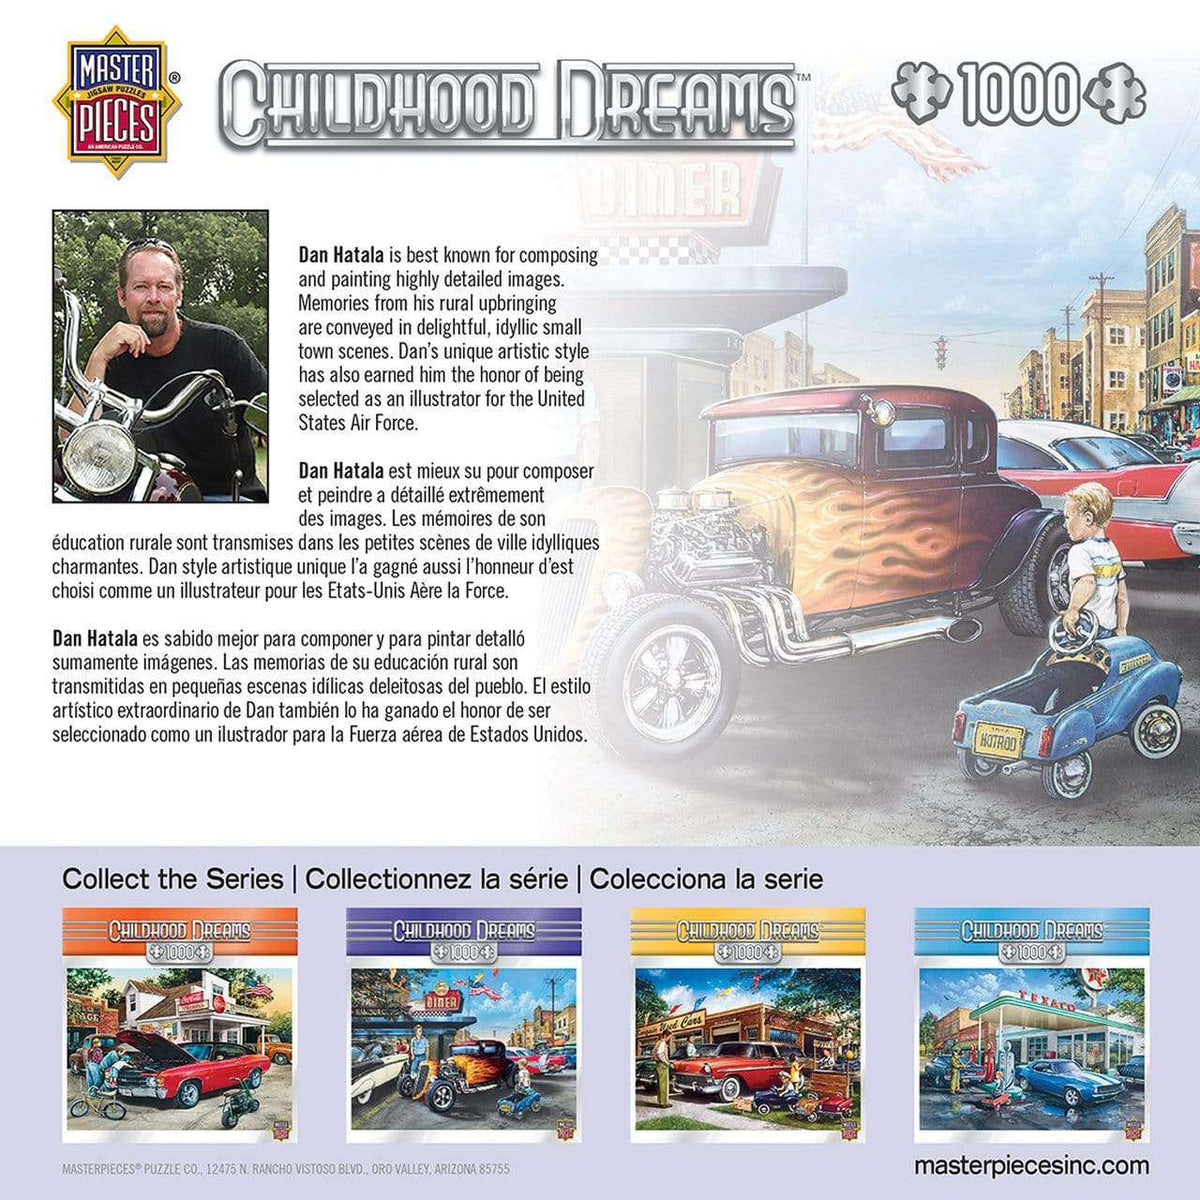 Masterpieces Childhood Dreams - Hot Rods and Milkshakes - 1,000 Piece Puzzle - Legacy Toys